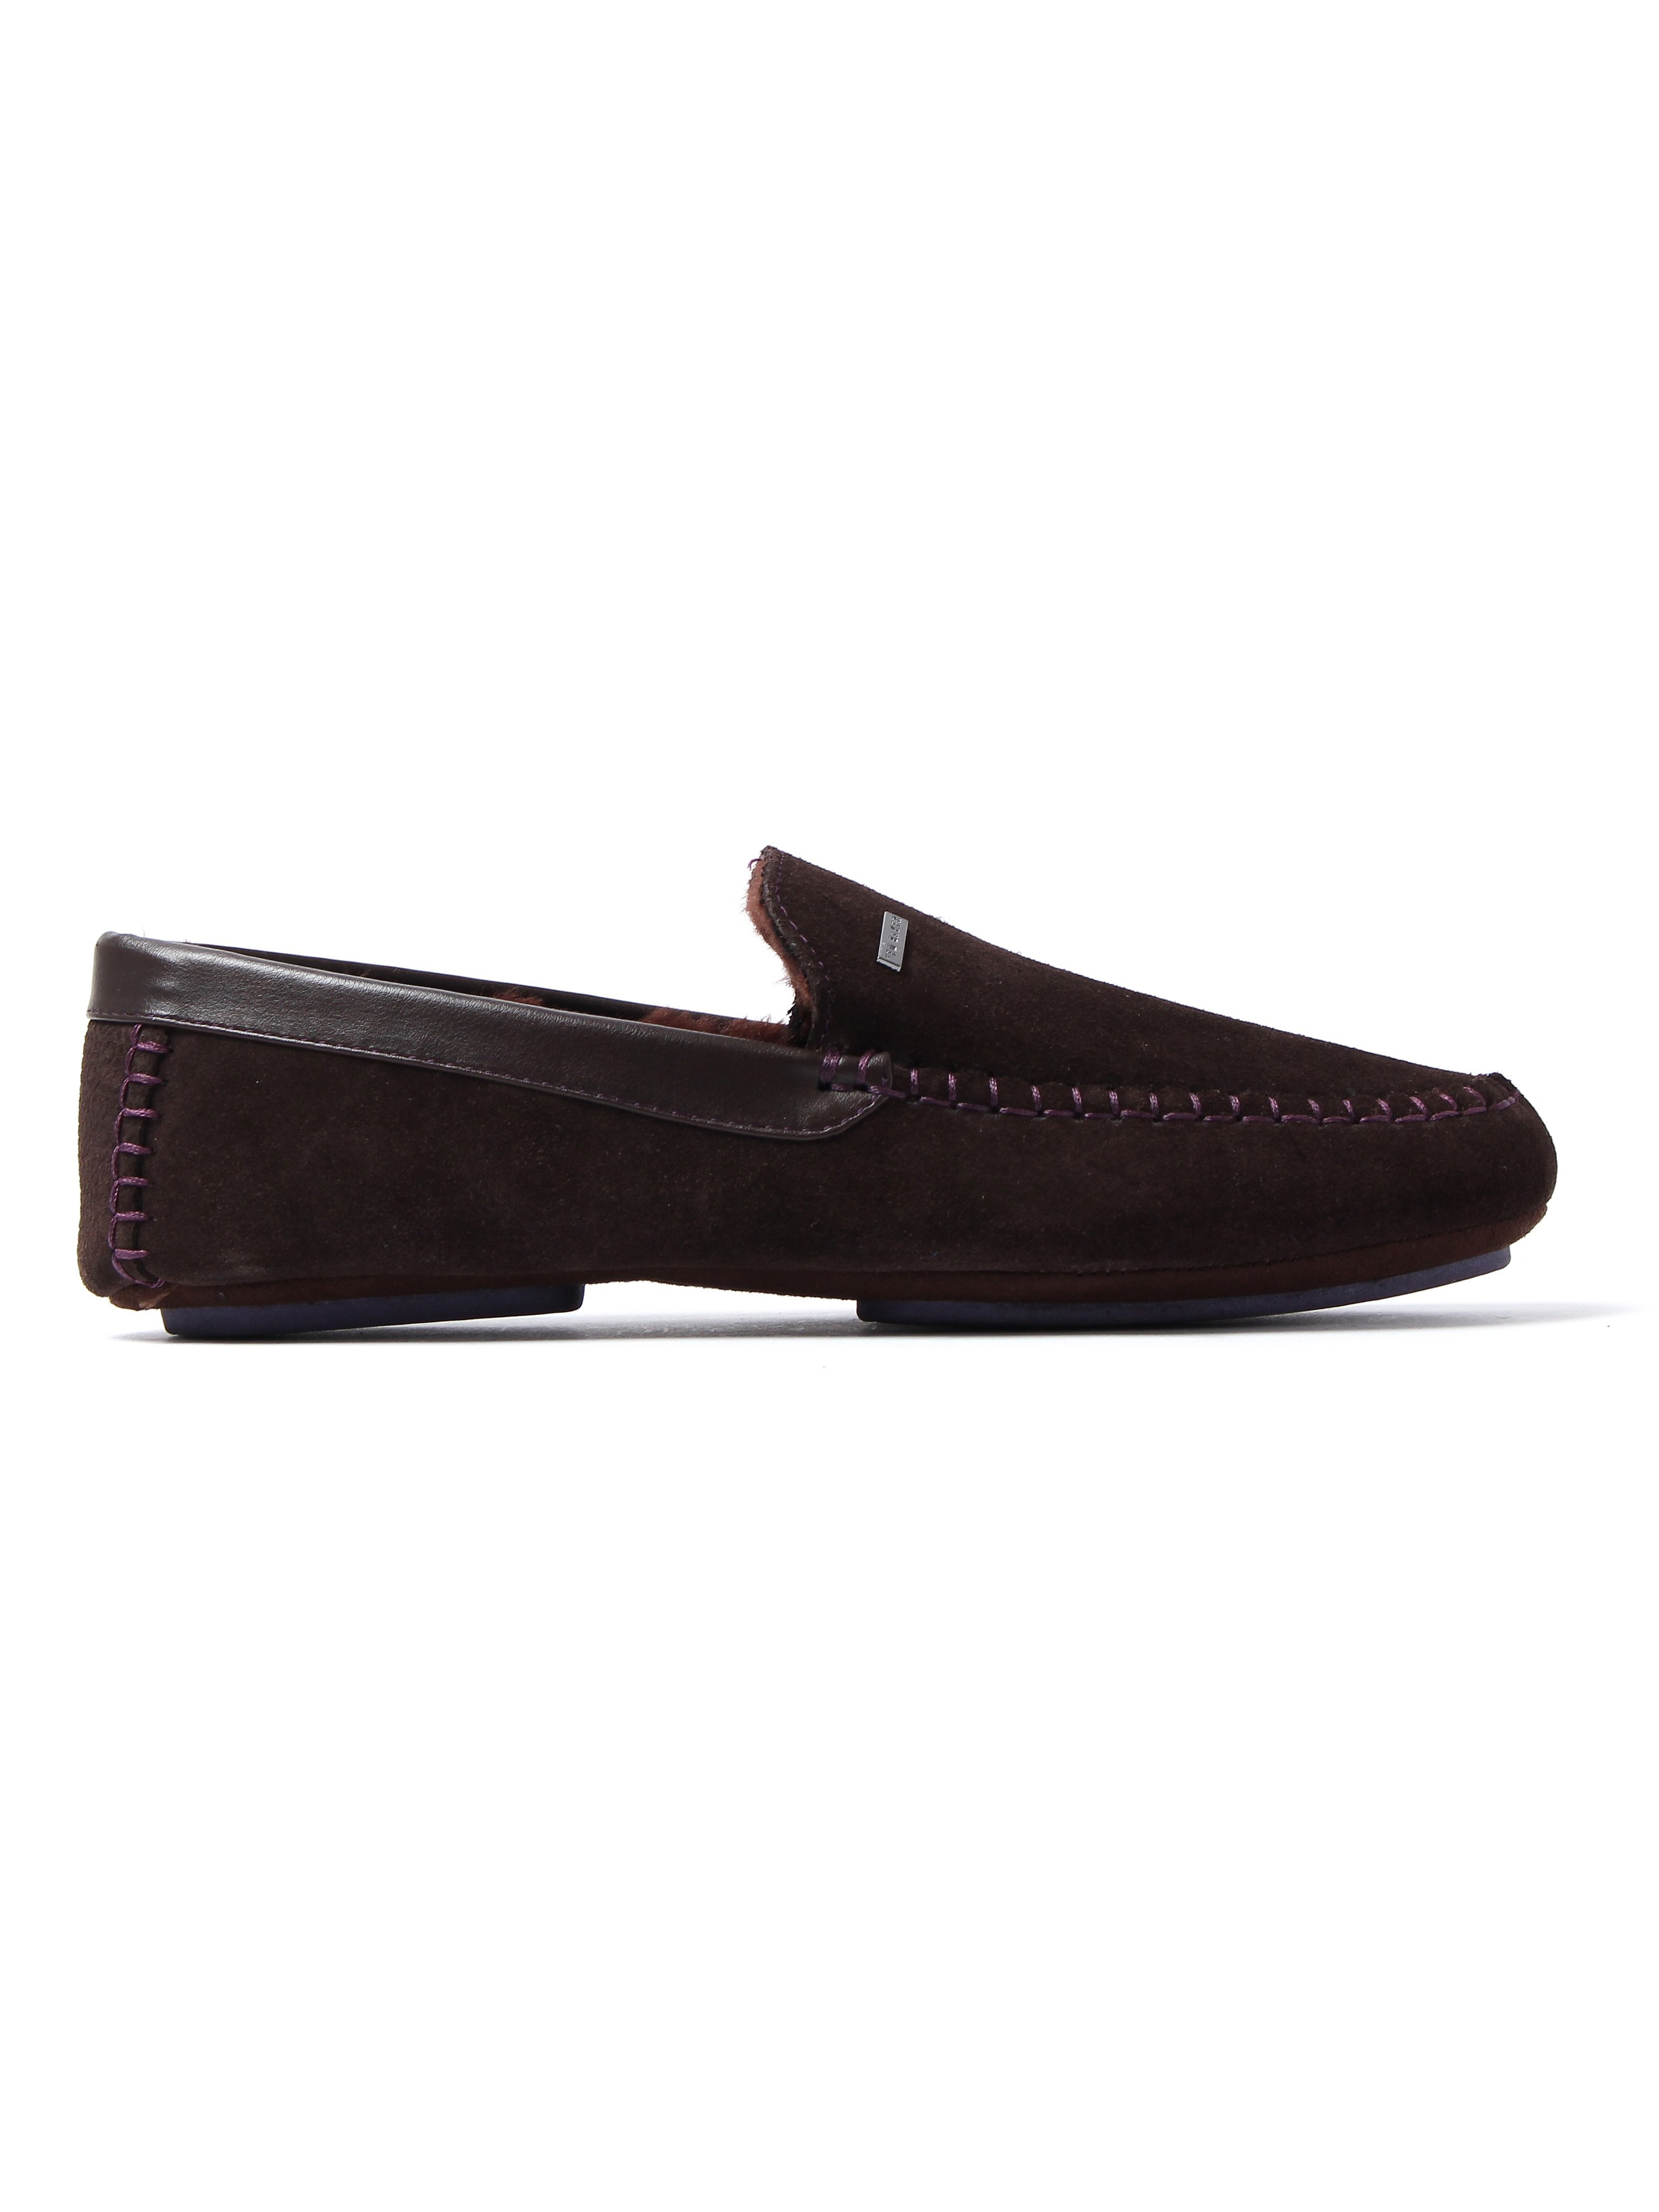 Ted Baker Men's Moriss 2 Slippers - Brown Suede